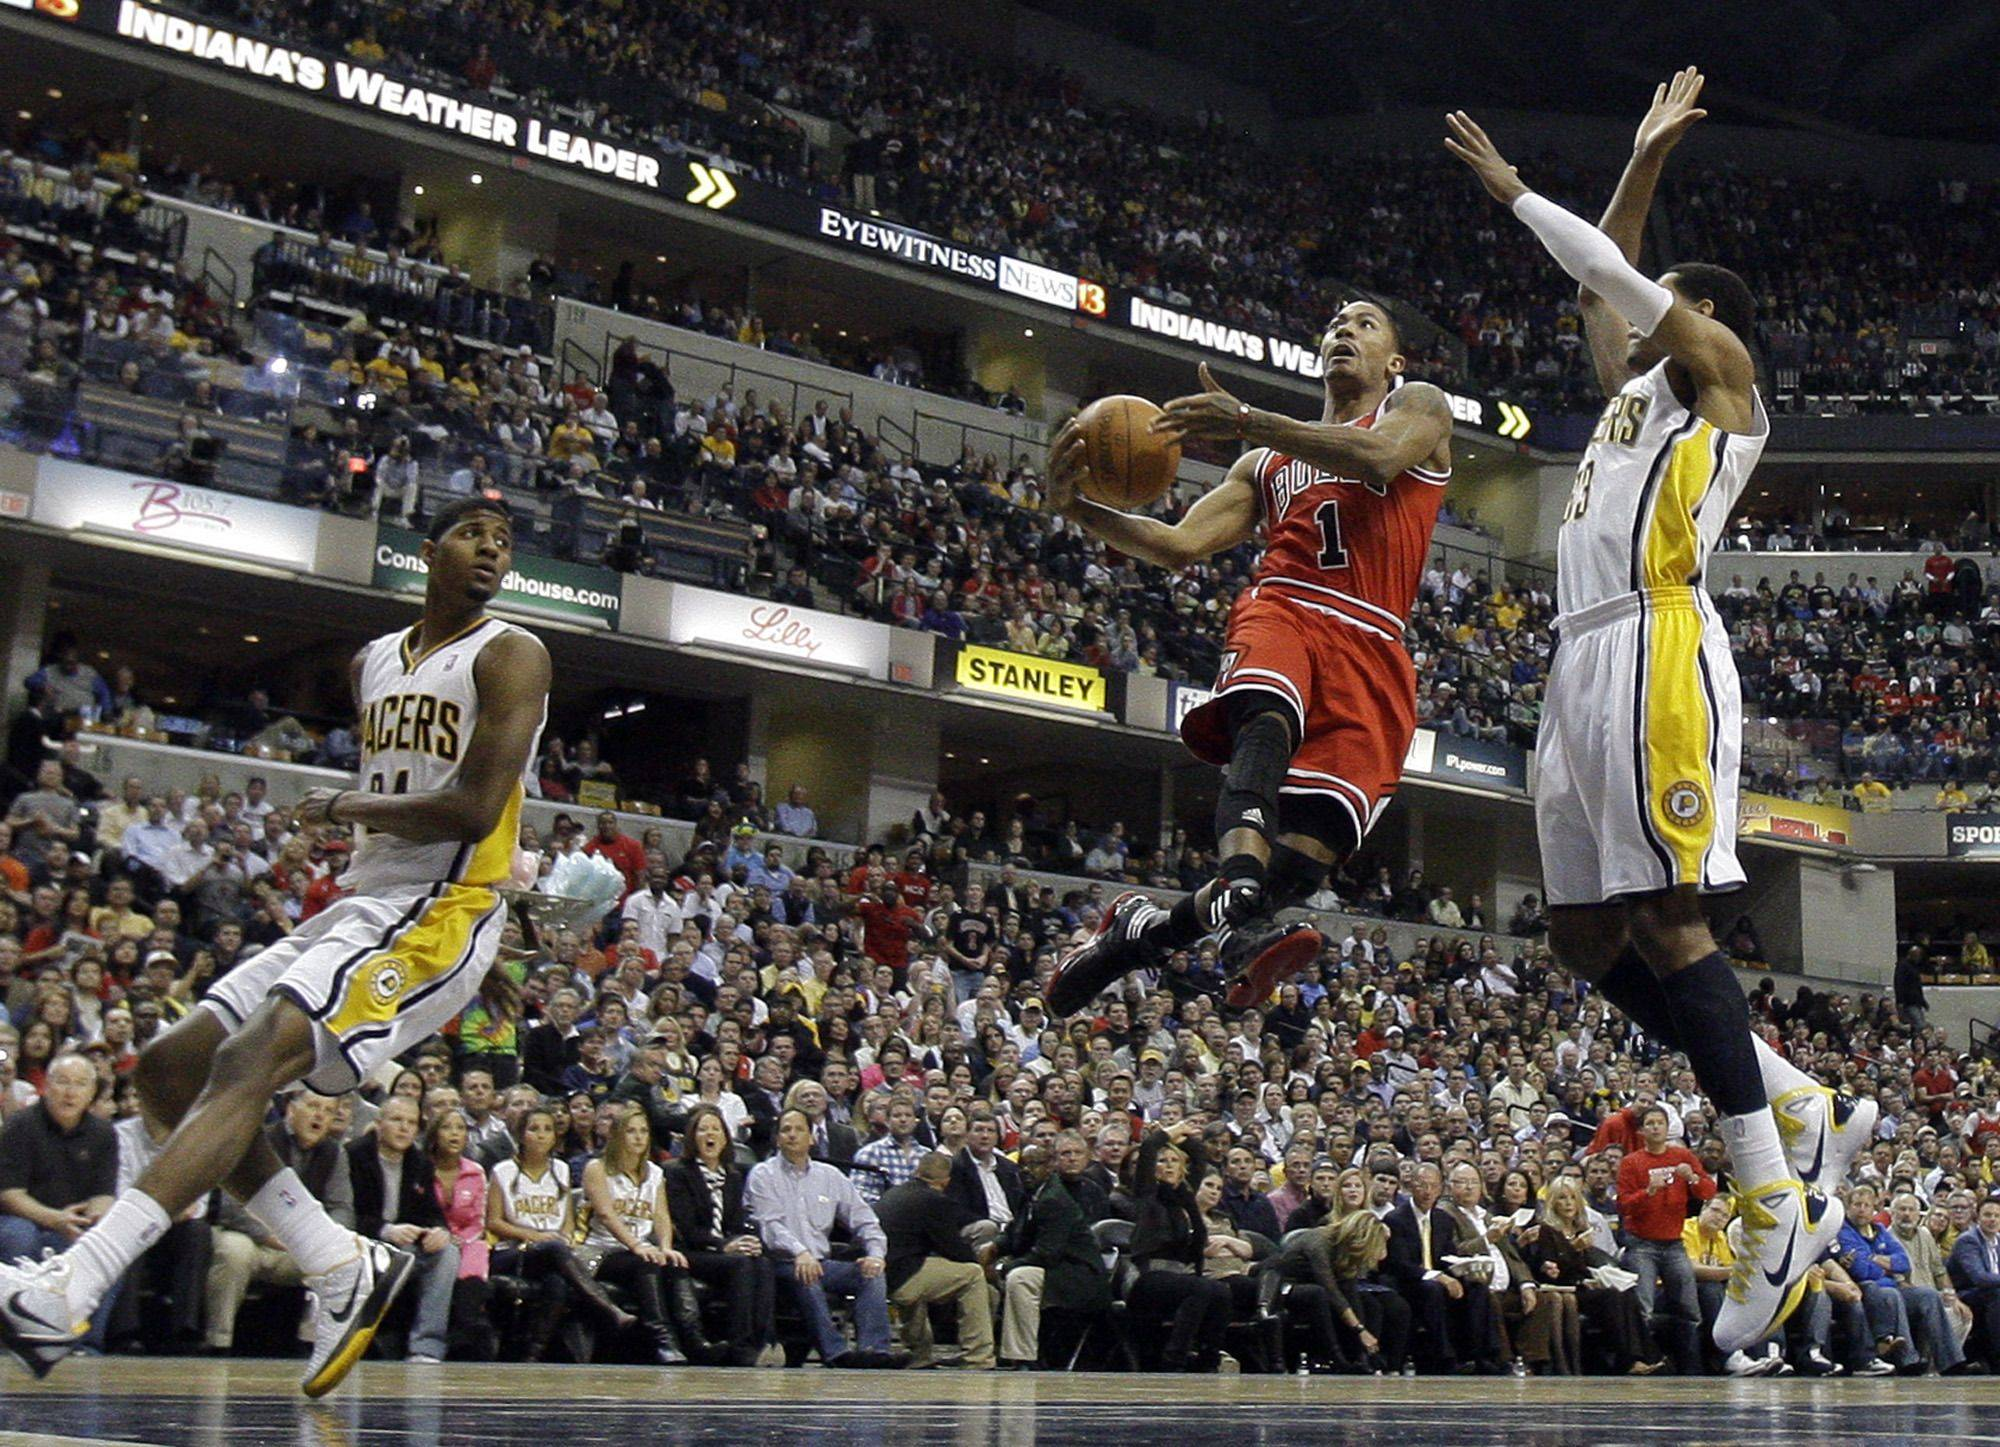 Chicago Bulls' Derrick Rose (1) goes up for a shot between Indiana Pacers' Danny Granger (33) and Paul George (24) during the first half.